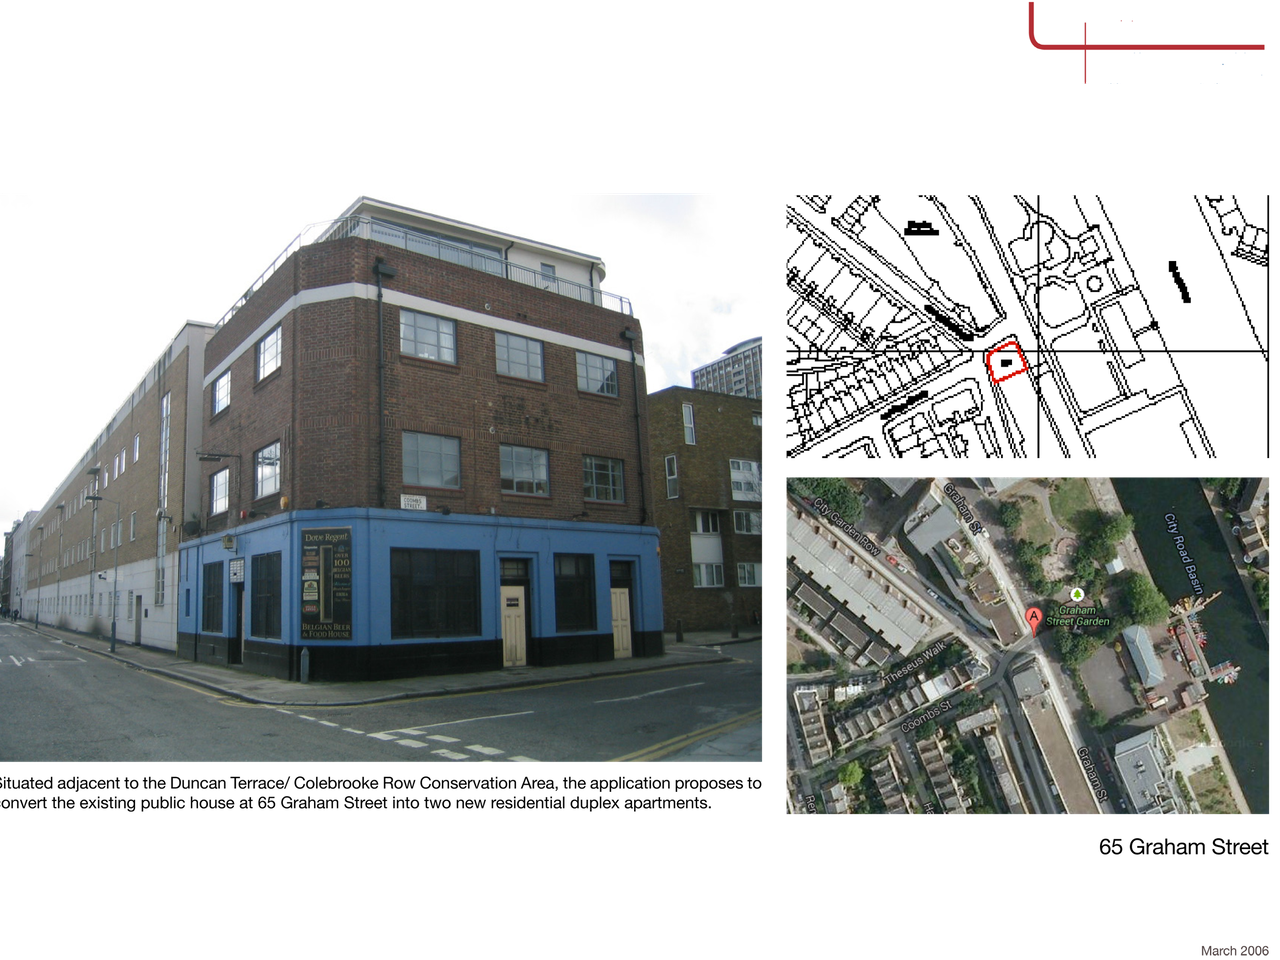 Public House Conversion to Residential, Islington